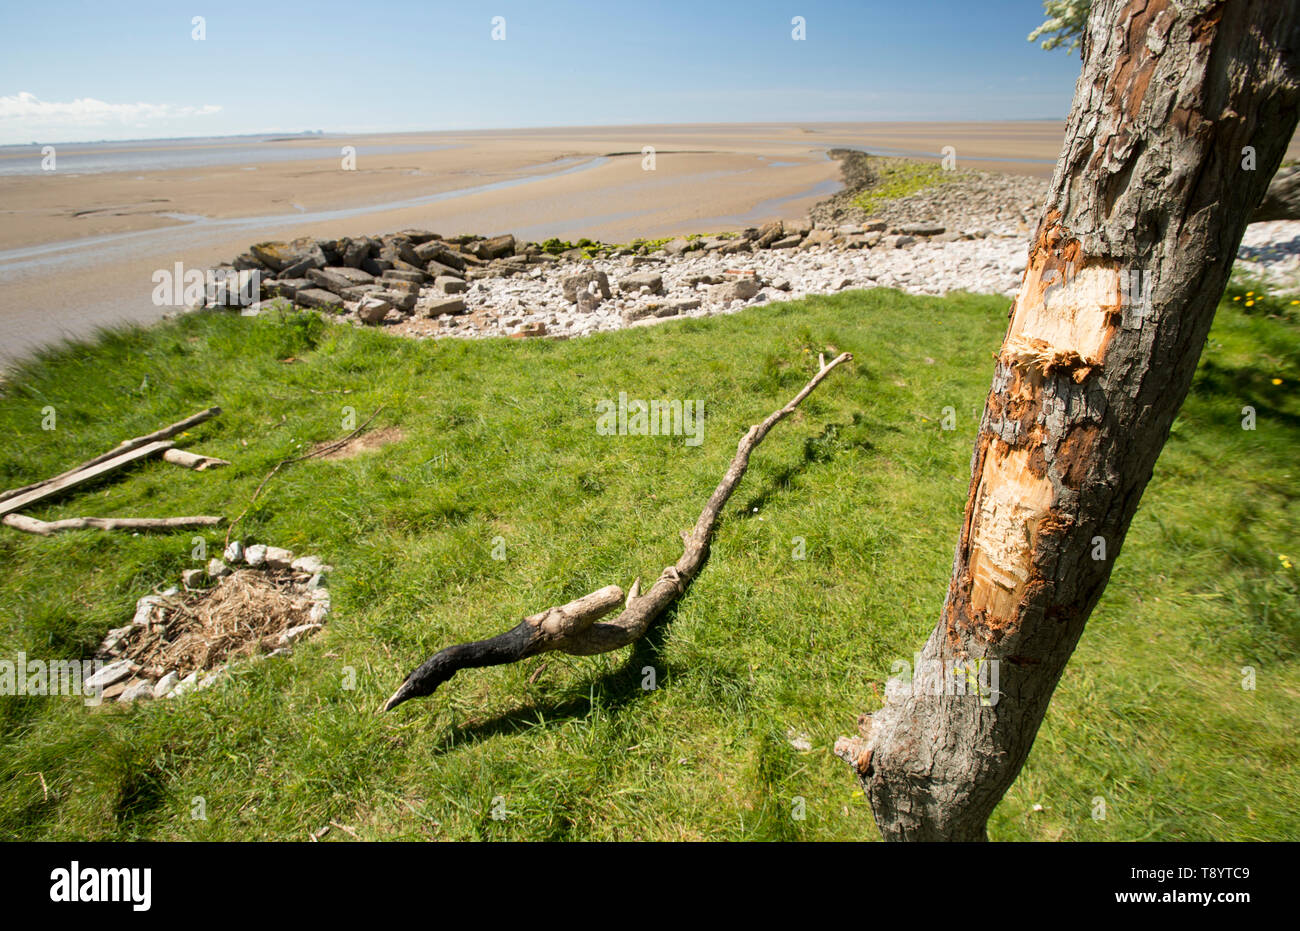 A hawthorn tree, Crataegus monogyna, growing at Jenny Brown's Point near the village of Silverdale on the edge of Morecambe Bay. Unsuccessful attempts - Stock Image